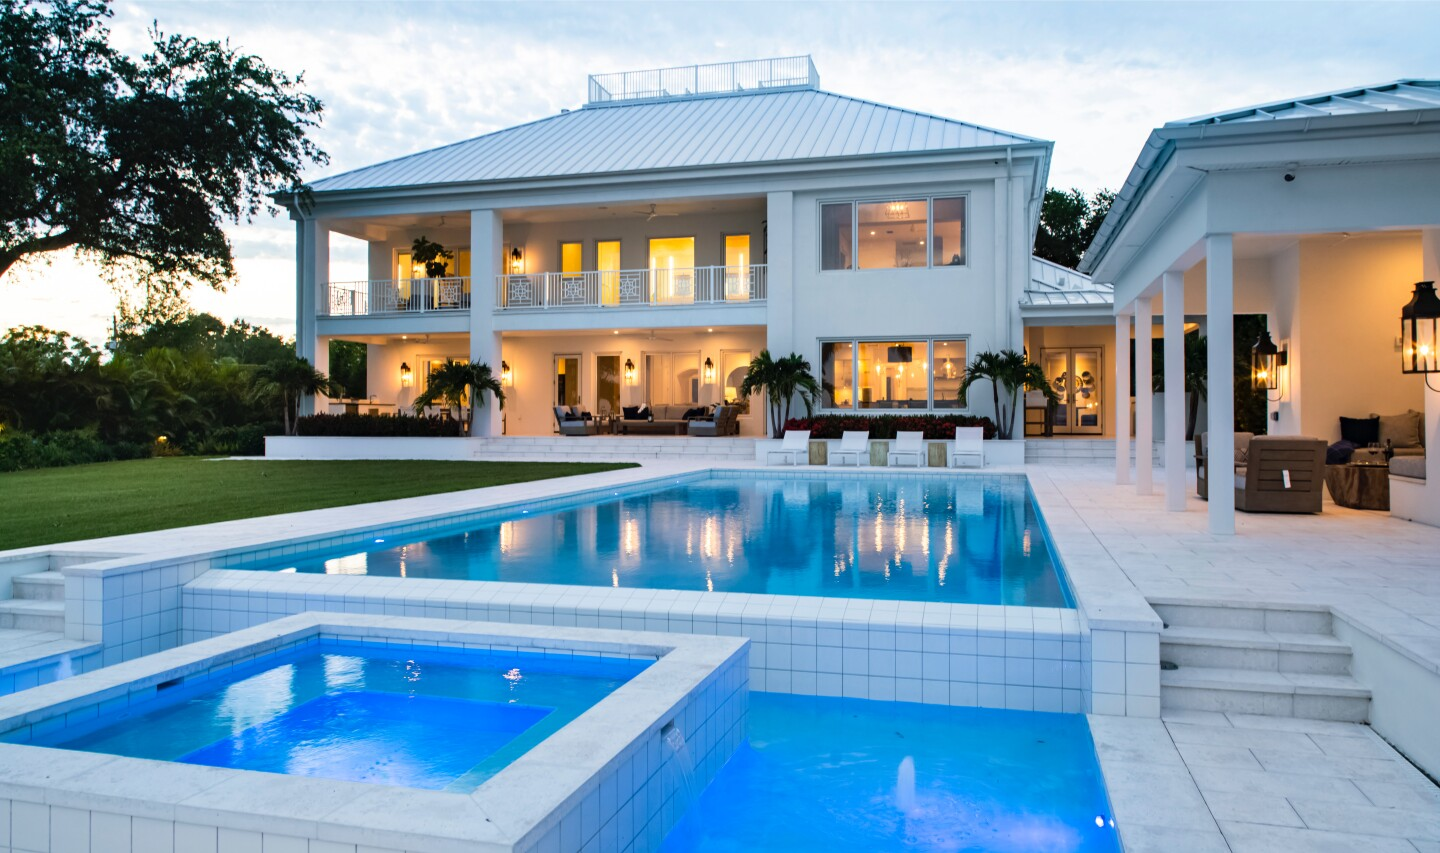 The nearly 9,000-square-foot home expands to a backyard with a pool and boat dock.